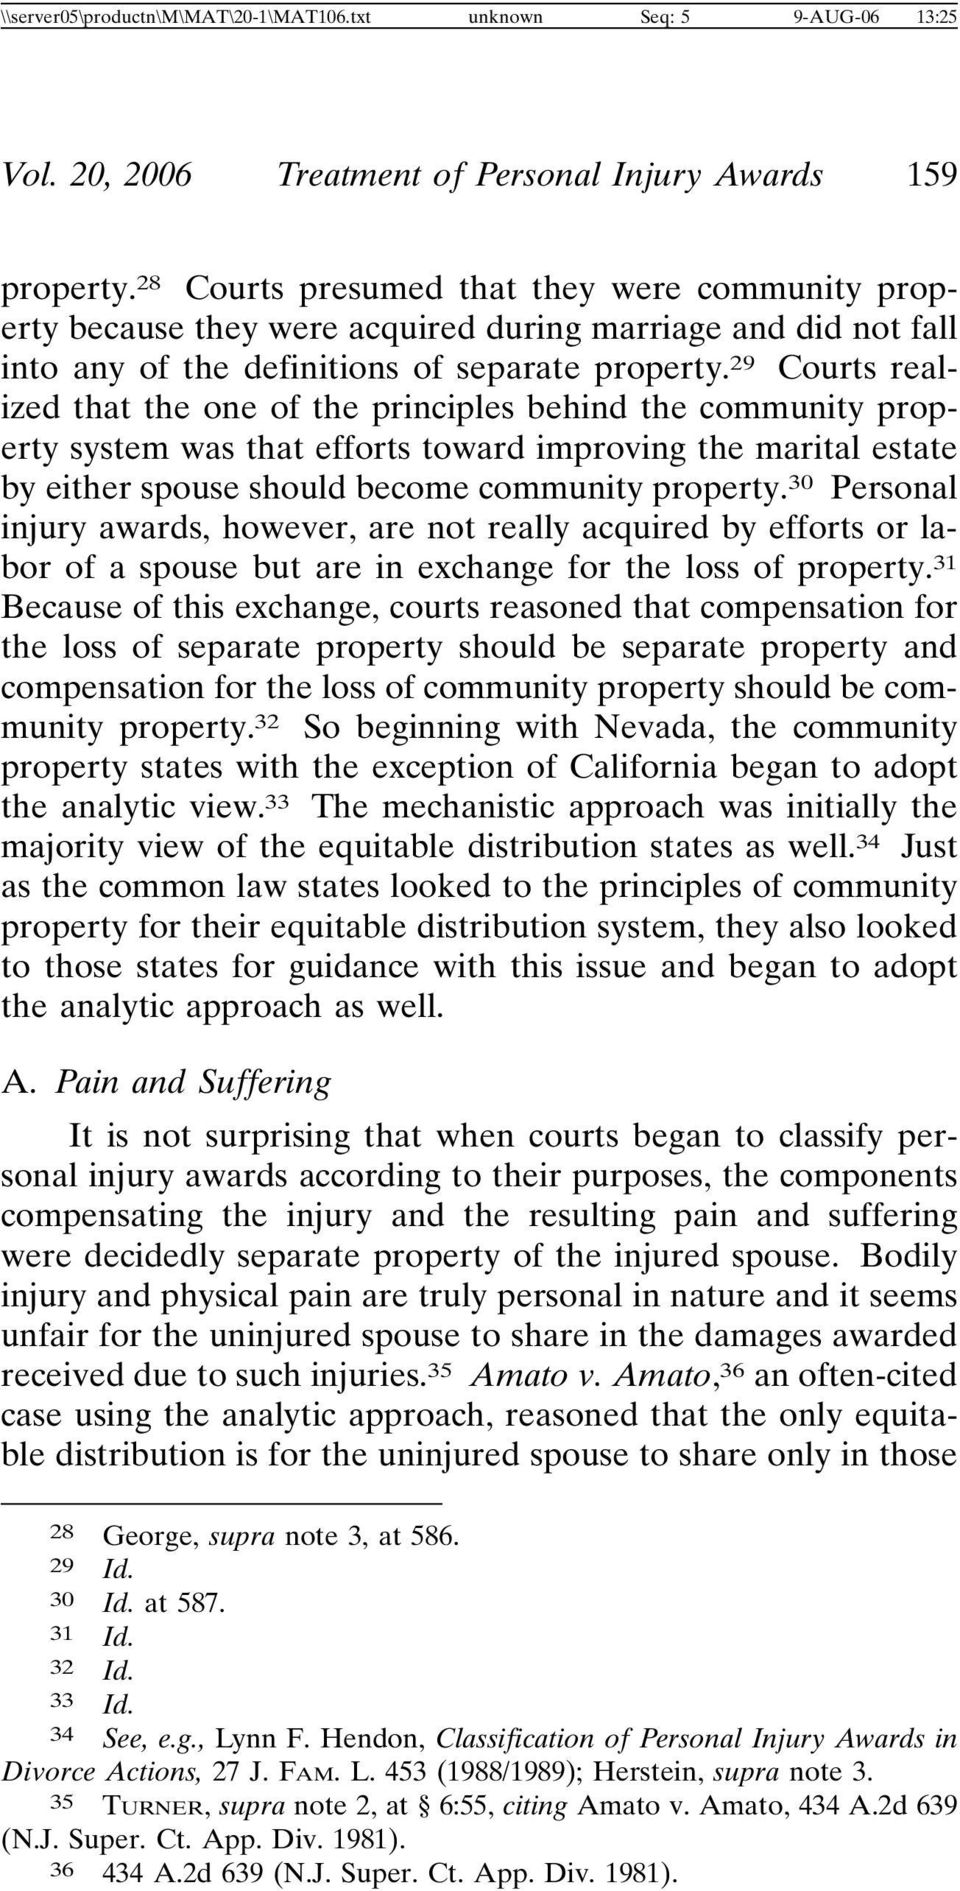 29 Courts realized that the one of the principles behind the community property system was that efforts toward improving the marital estate by either spouse should become community property.